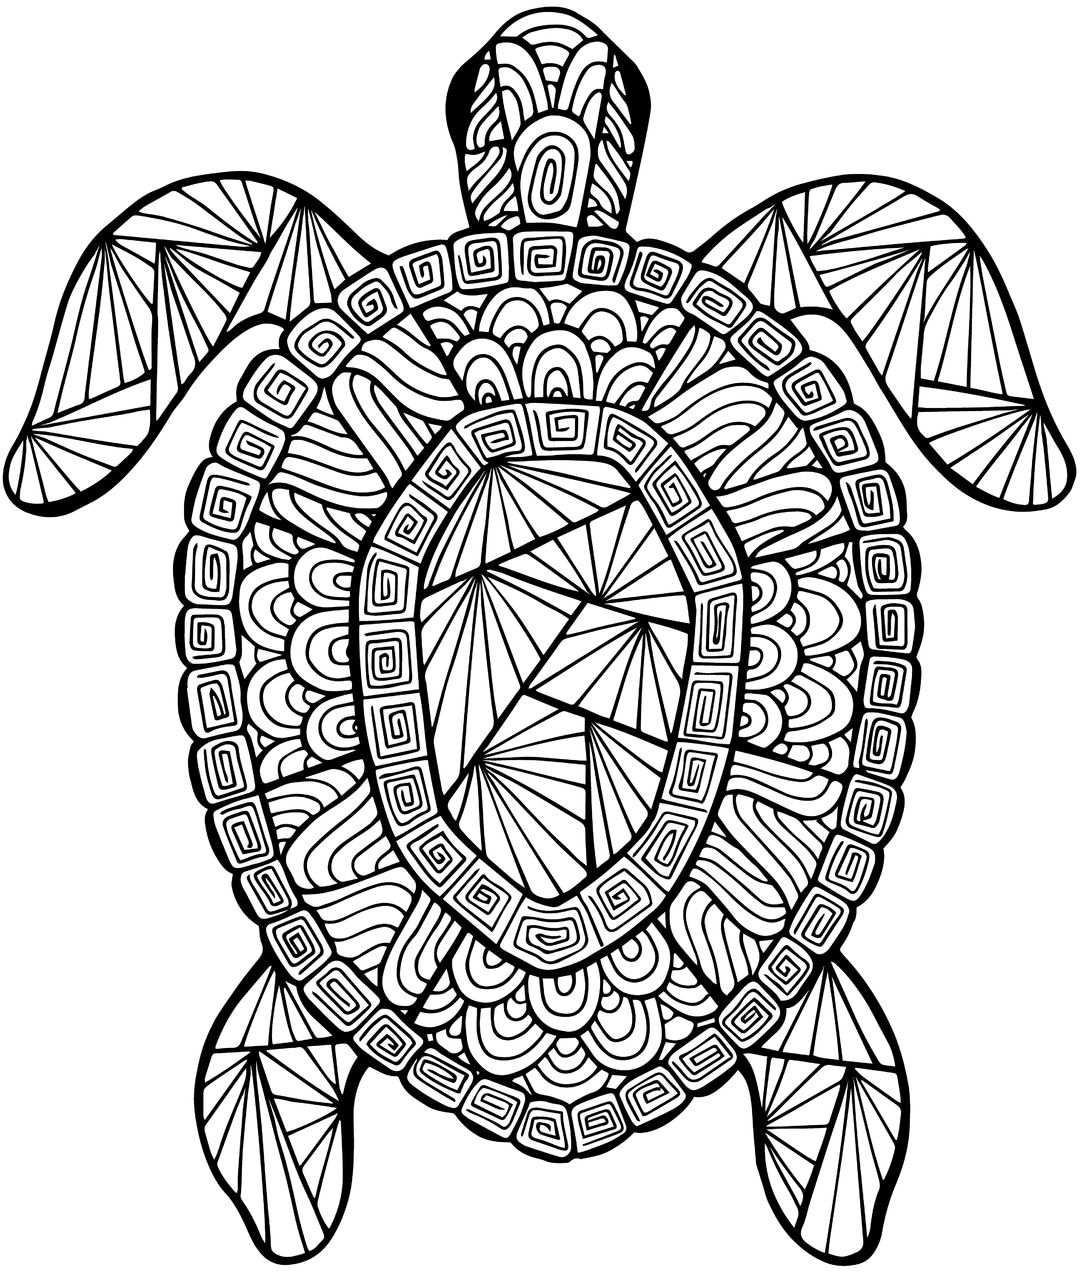 1080x1272 Detailed Sea Turtle Advanced Coloring Page A To Z Teacher Stuff